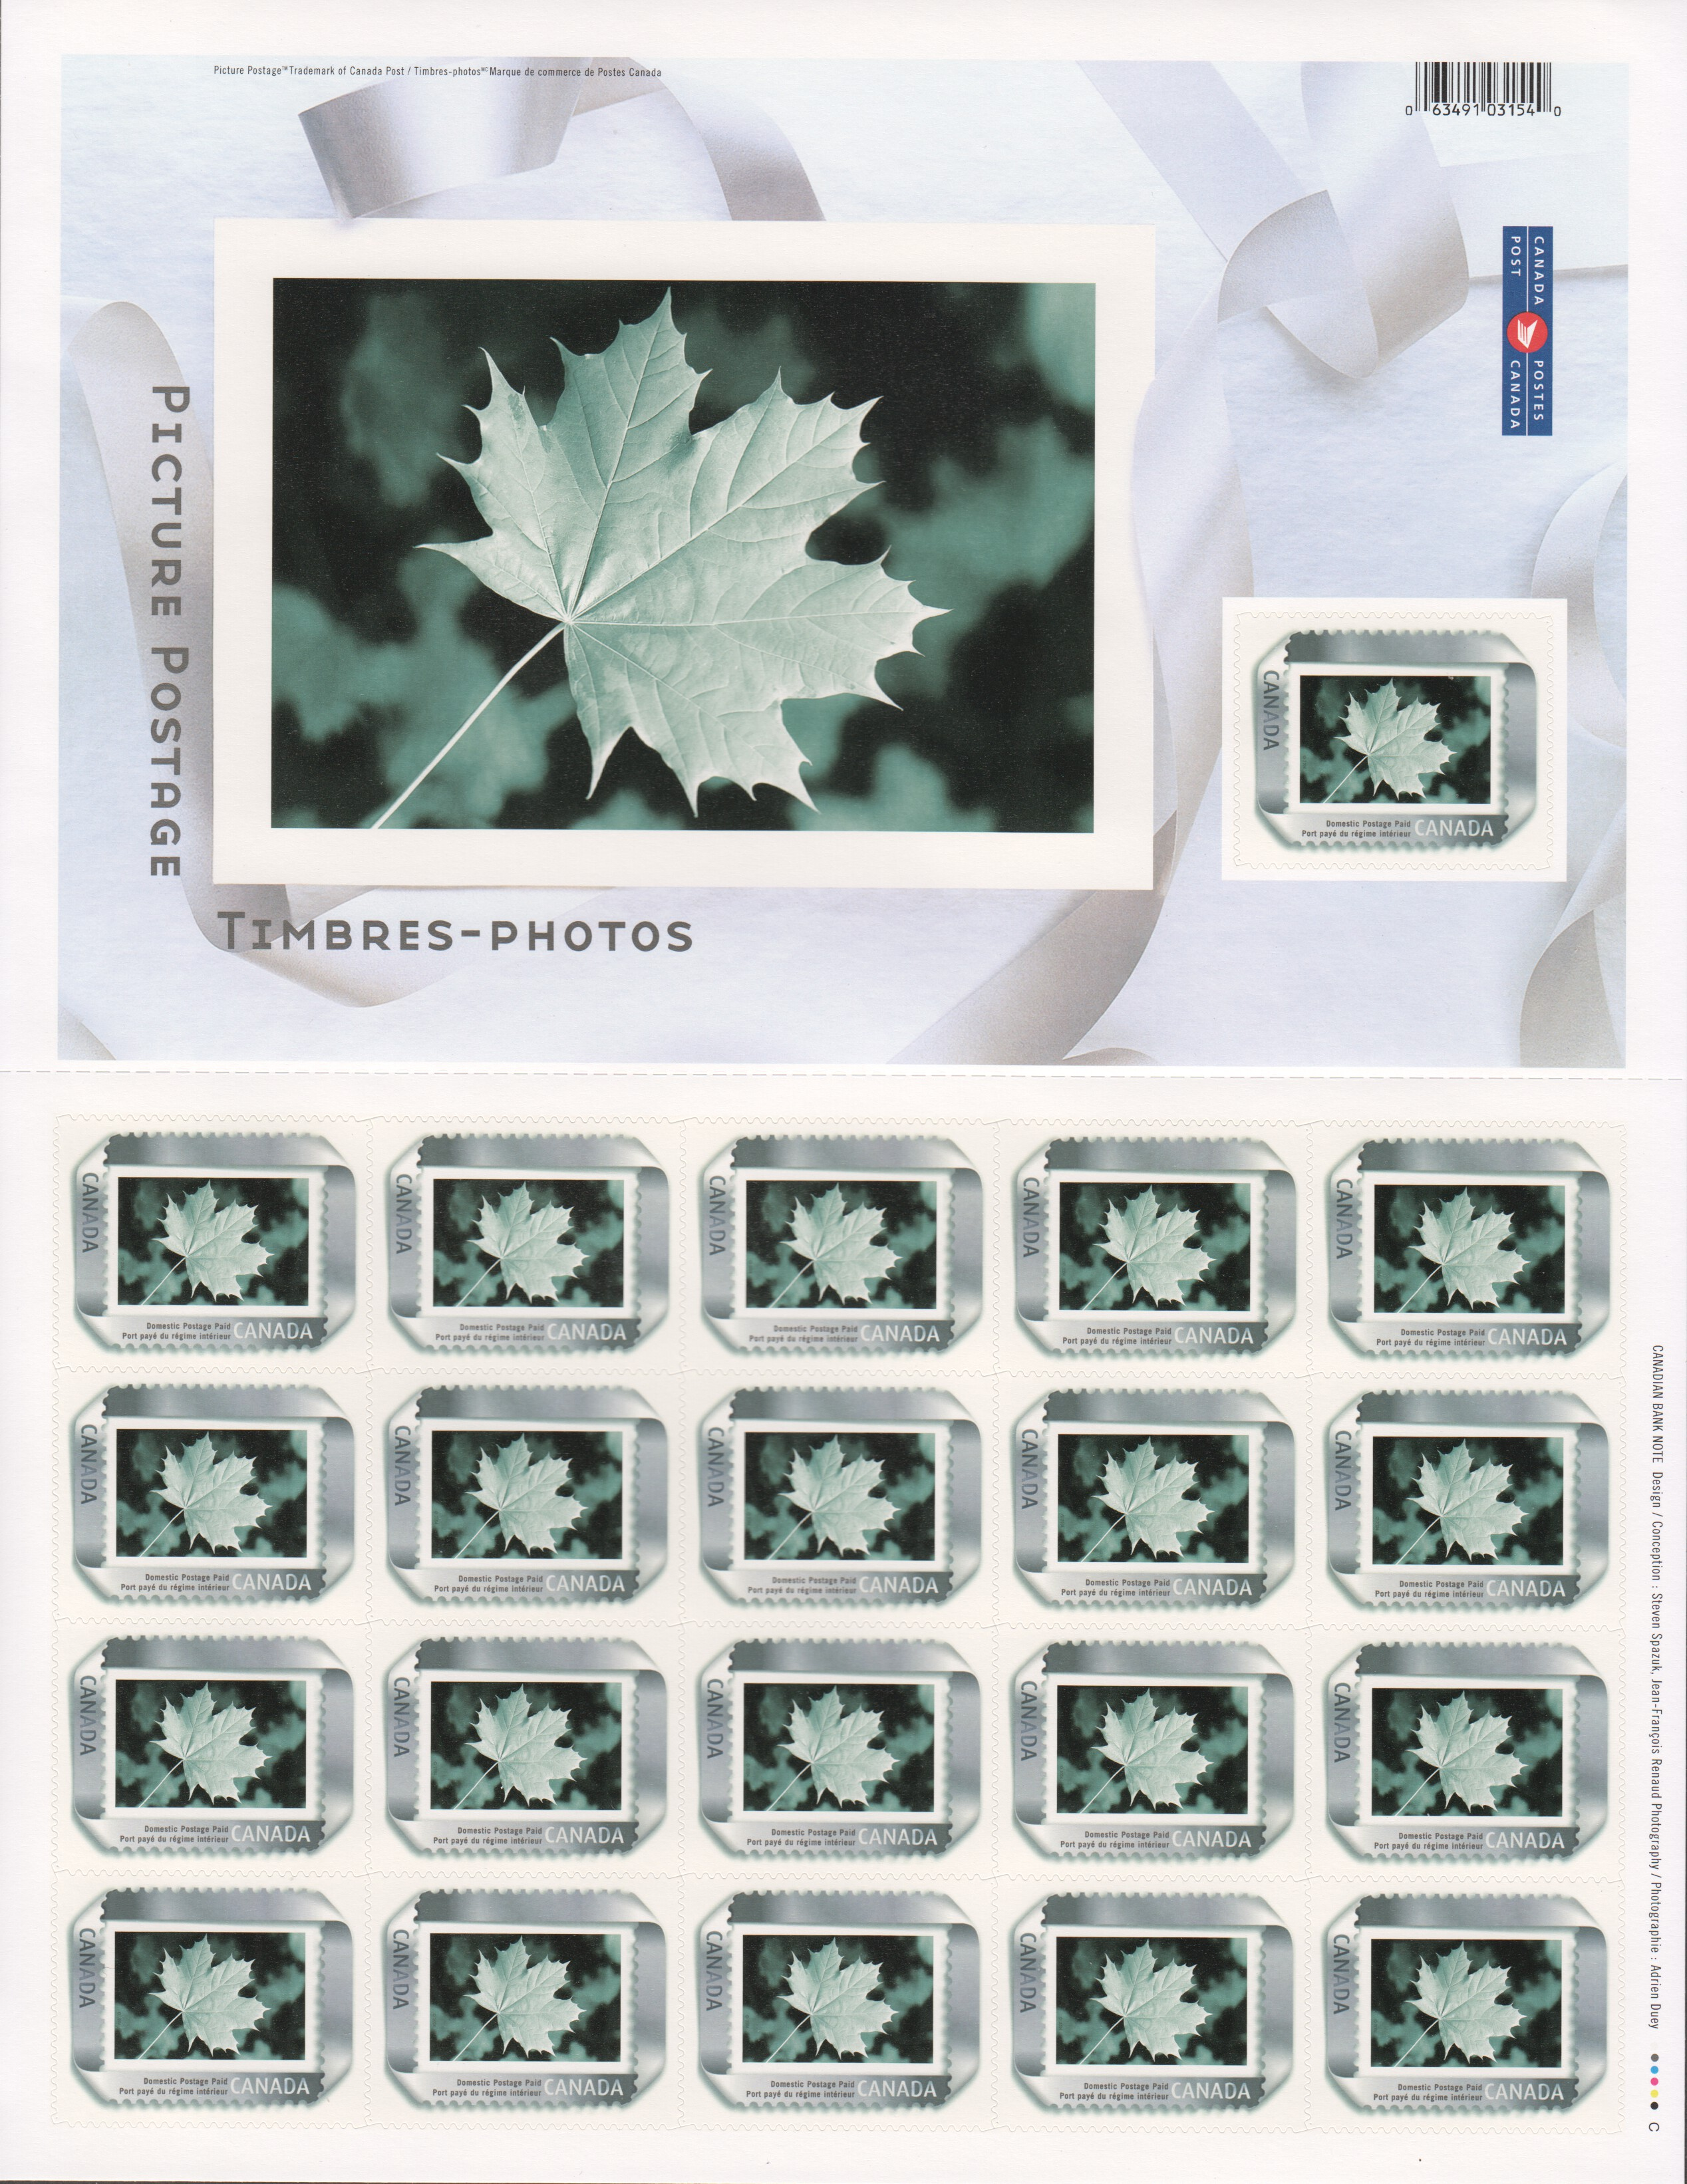 Canada Scott 2063 MNH (B10-7) - Click Image to Close